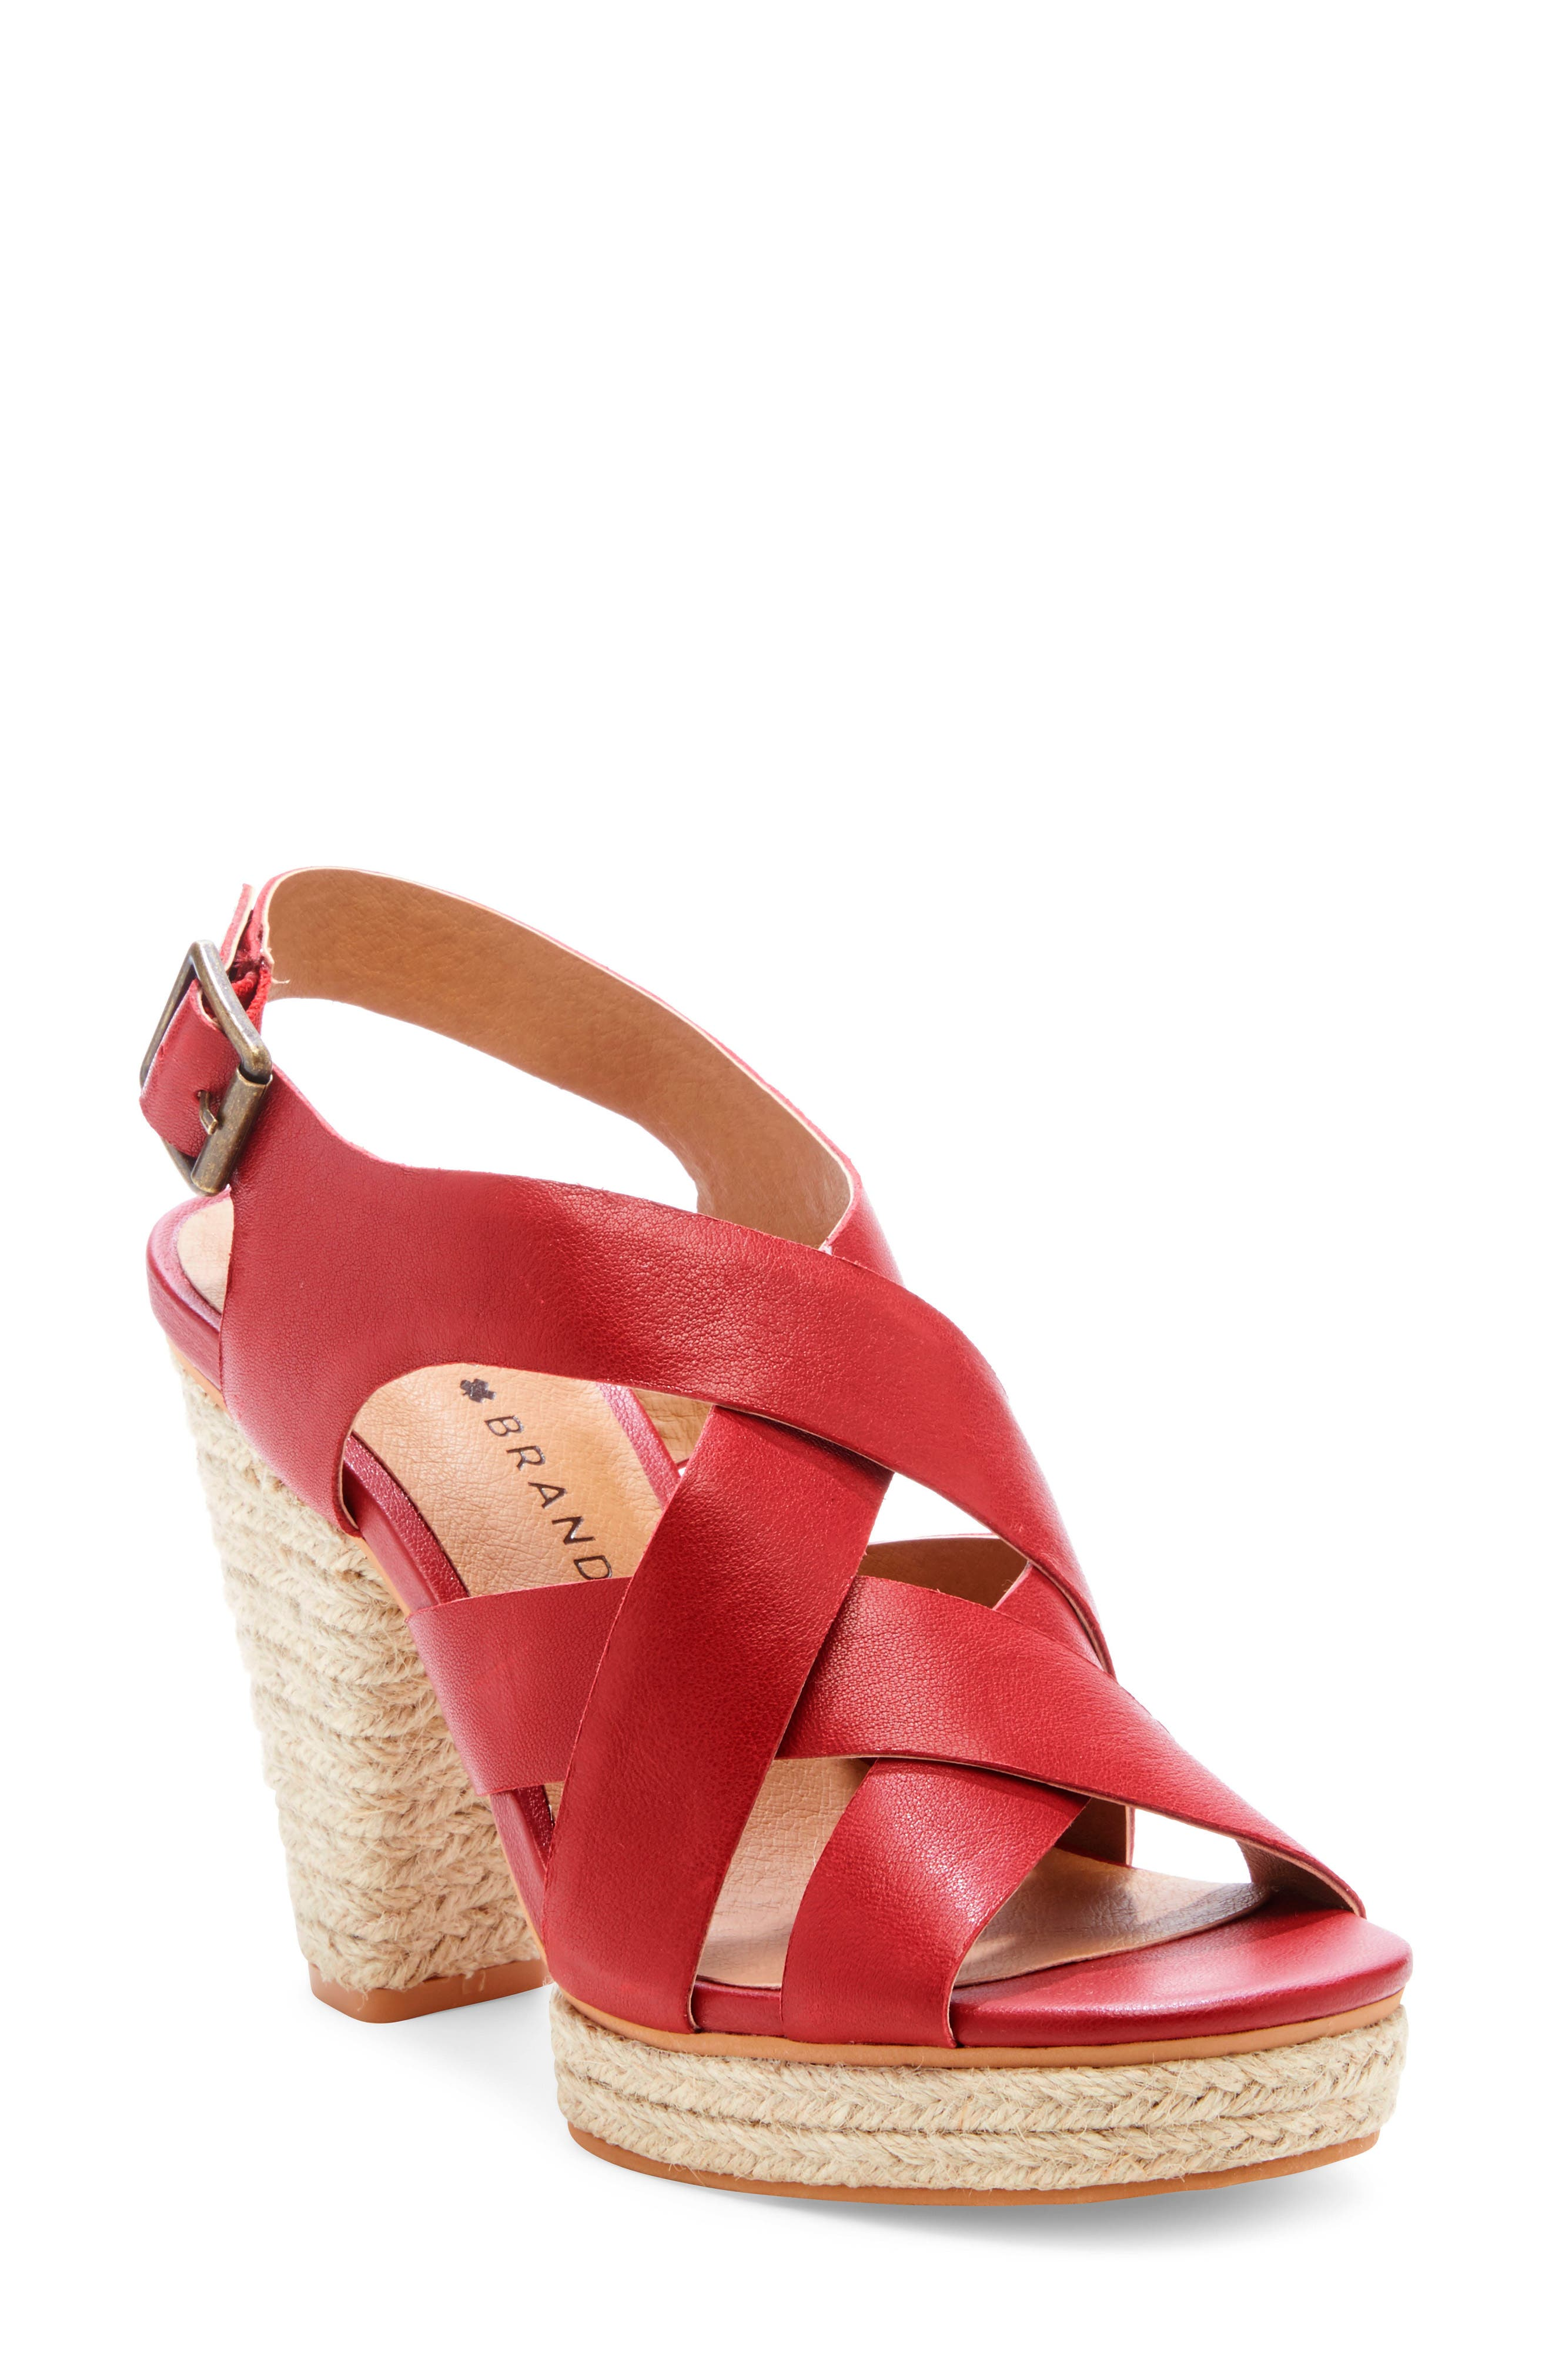 Lucky Brand Cabino Sandal, Red